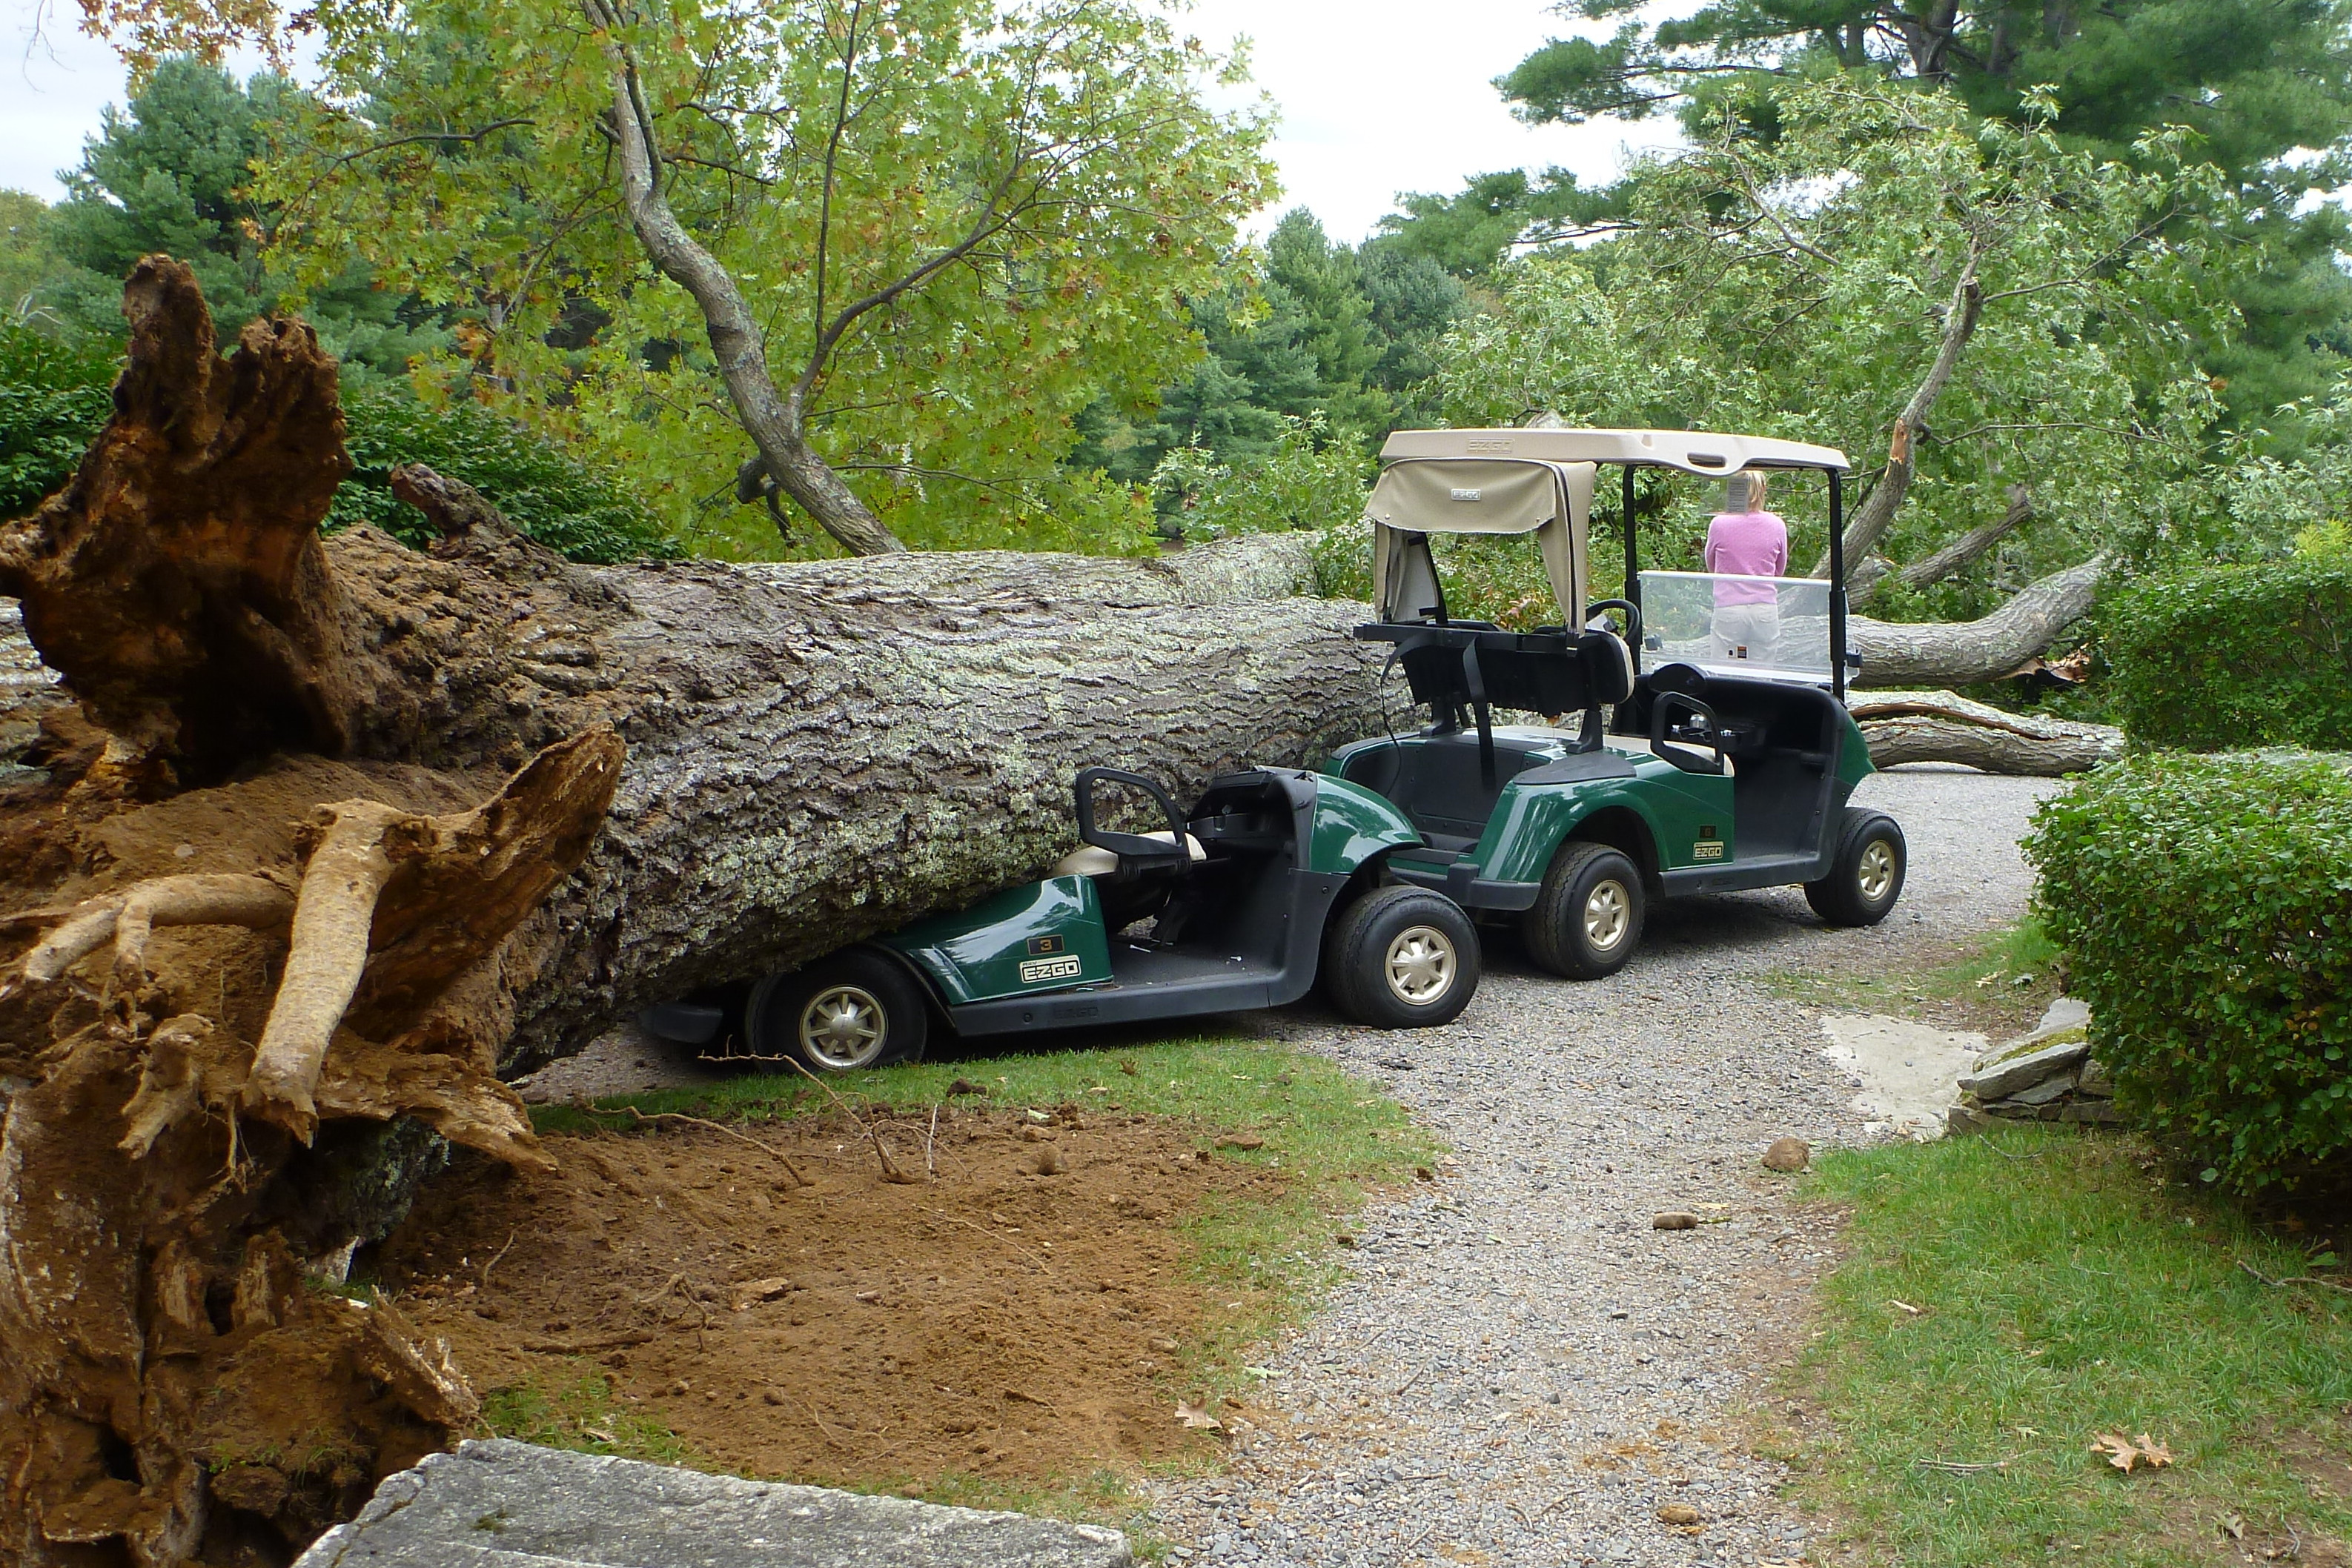 Huge Falling Tree Crushes Golf Carts | My Usual Game: David Owen on 2002 chrysler gem cart, car cart, box cart,